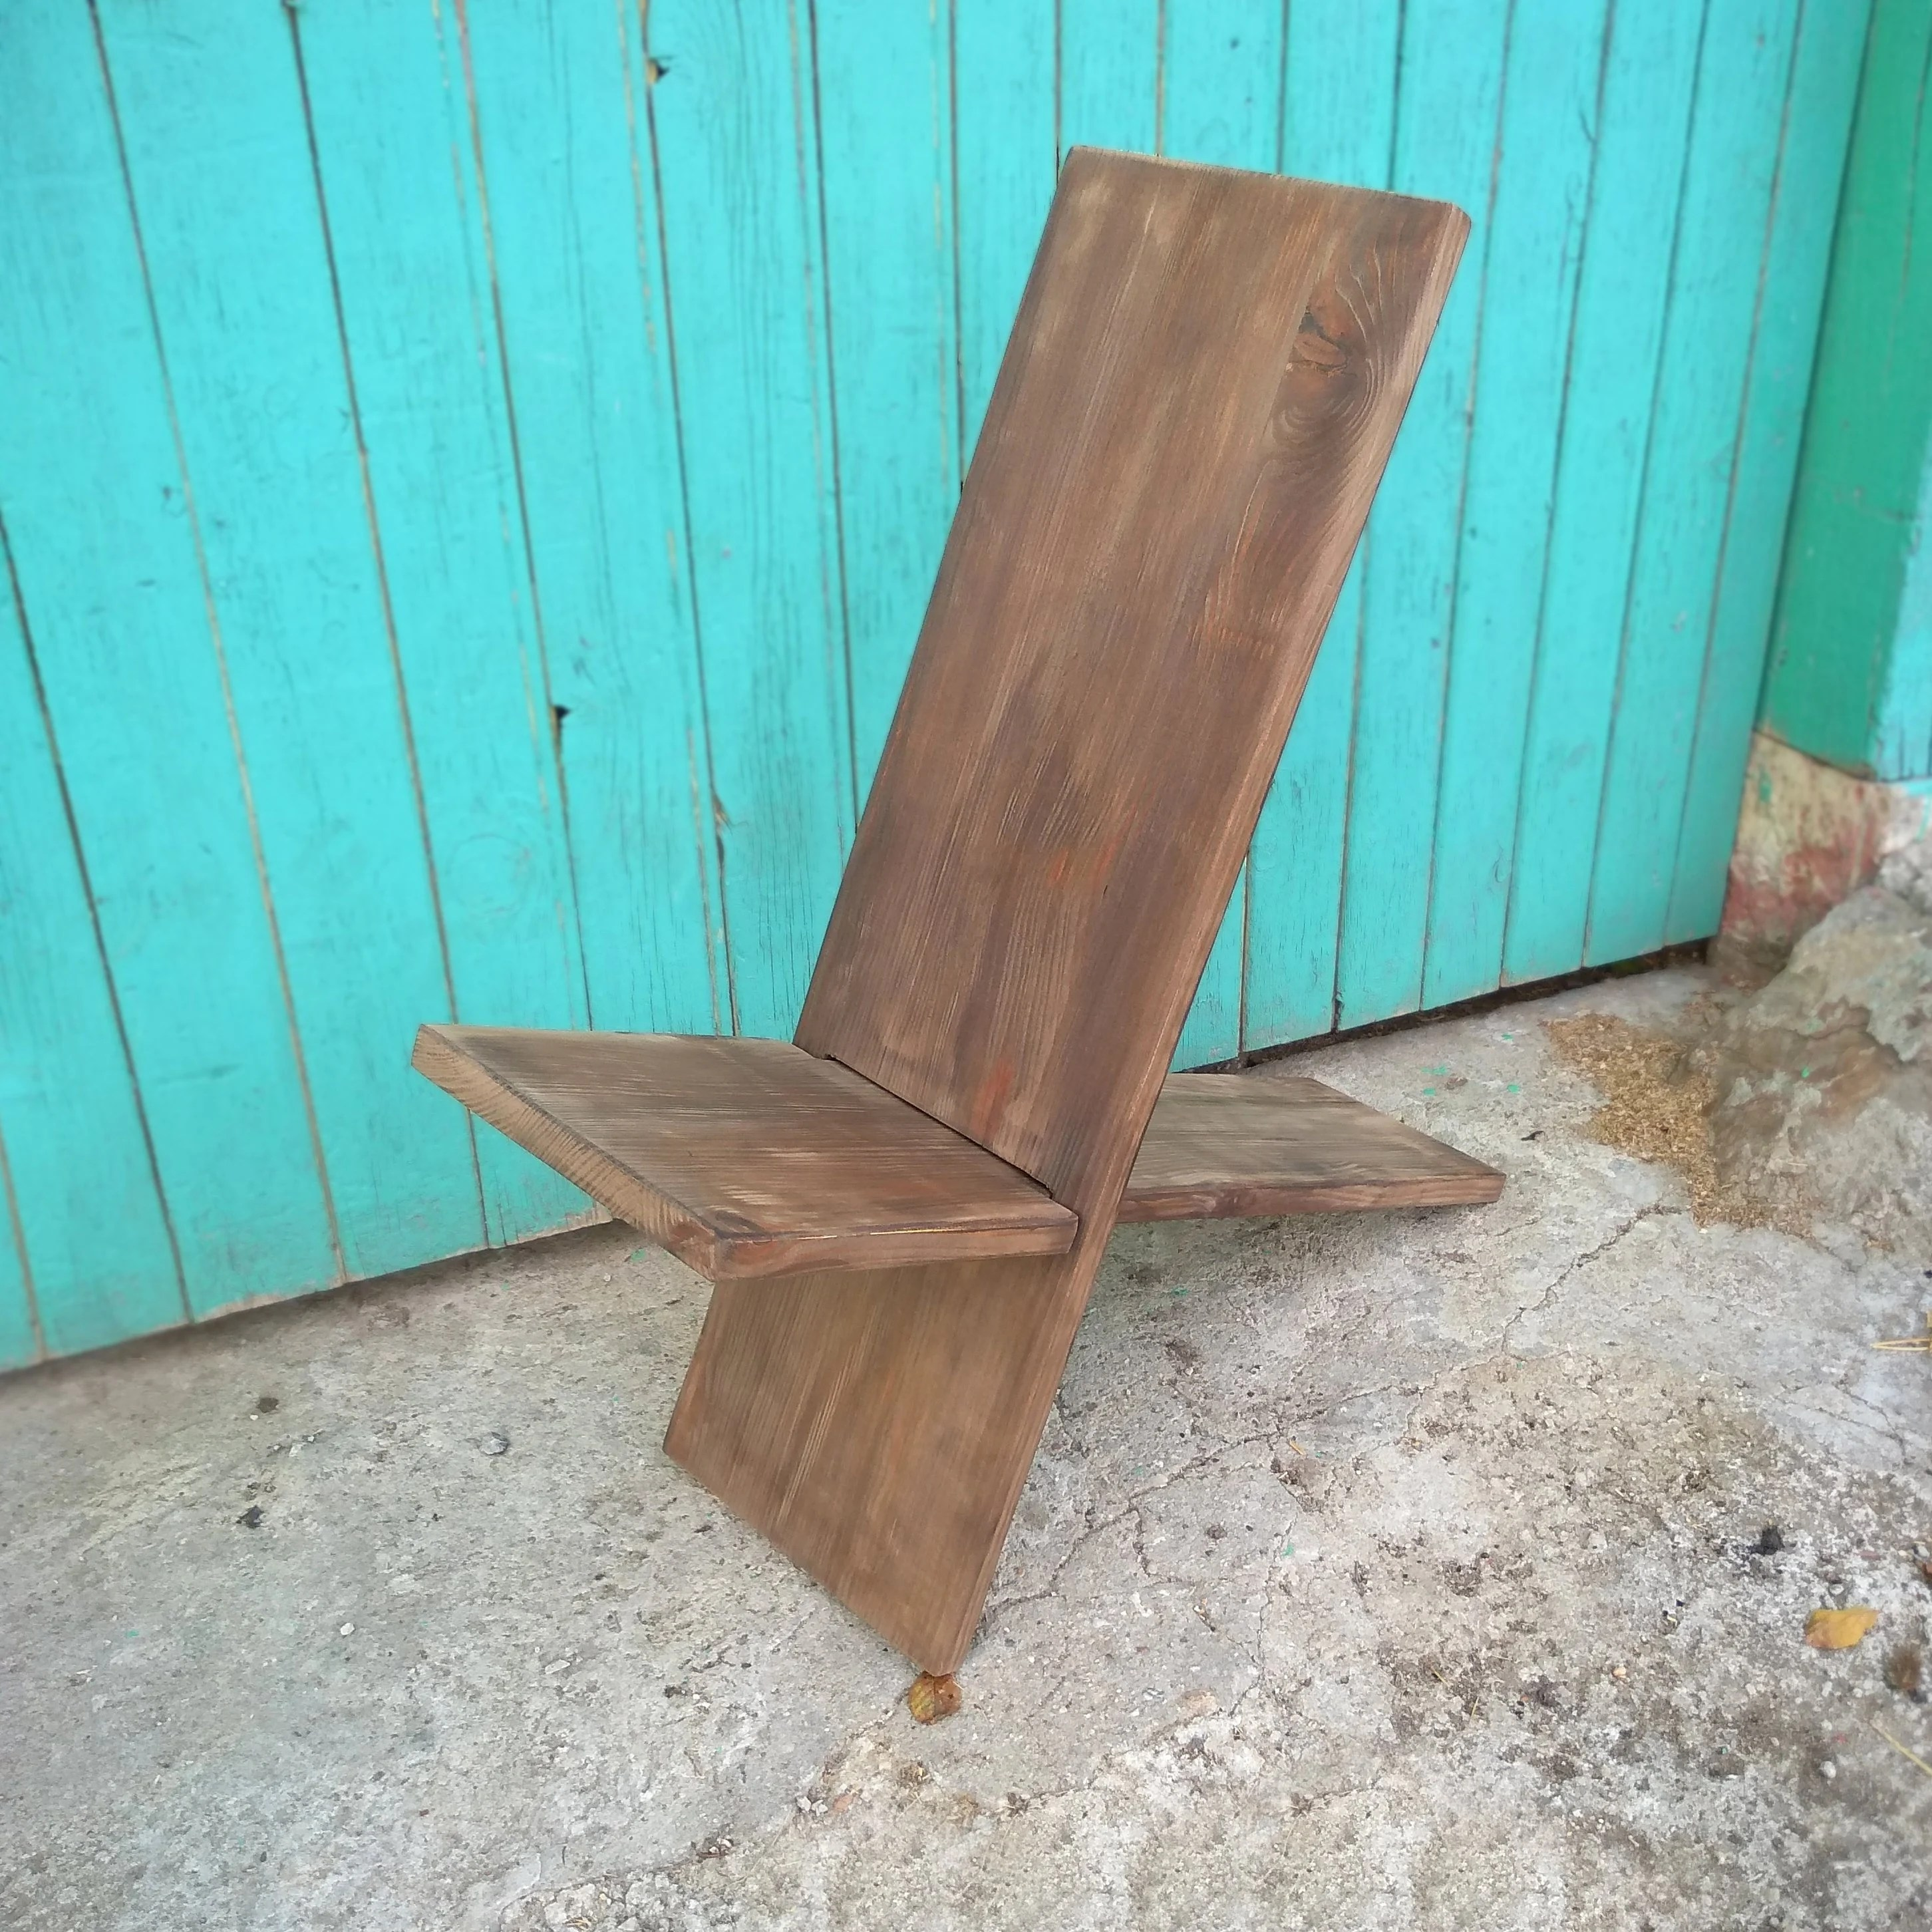 Alter Holzstuhl Garten Viking Chair Stargazer Chair Foldable Wooden Chair Two Piece Garden Furniture Holzstuhl Camp Chair Rustic Yard Chair